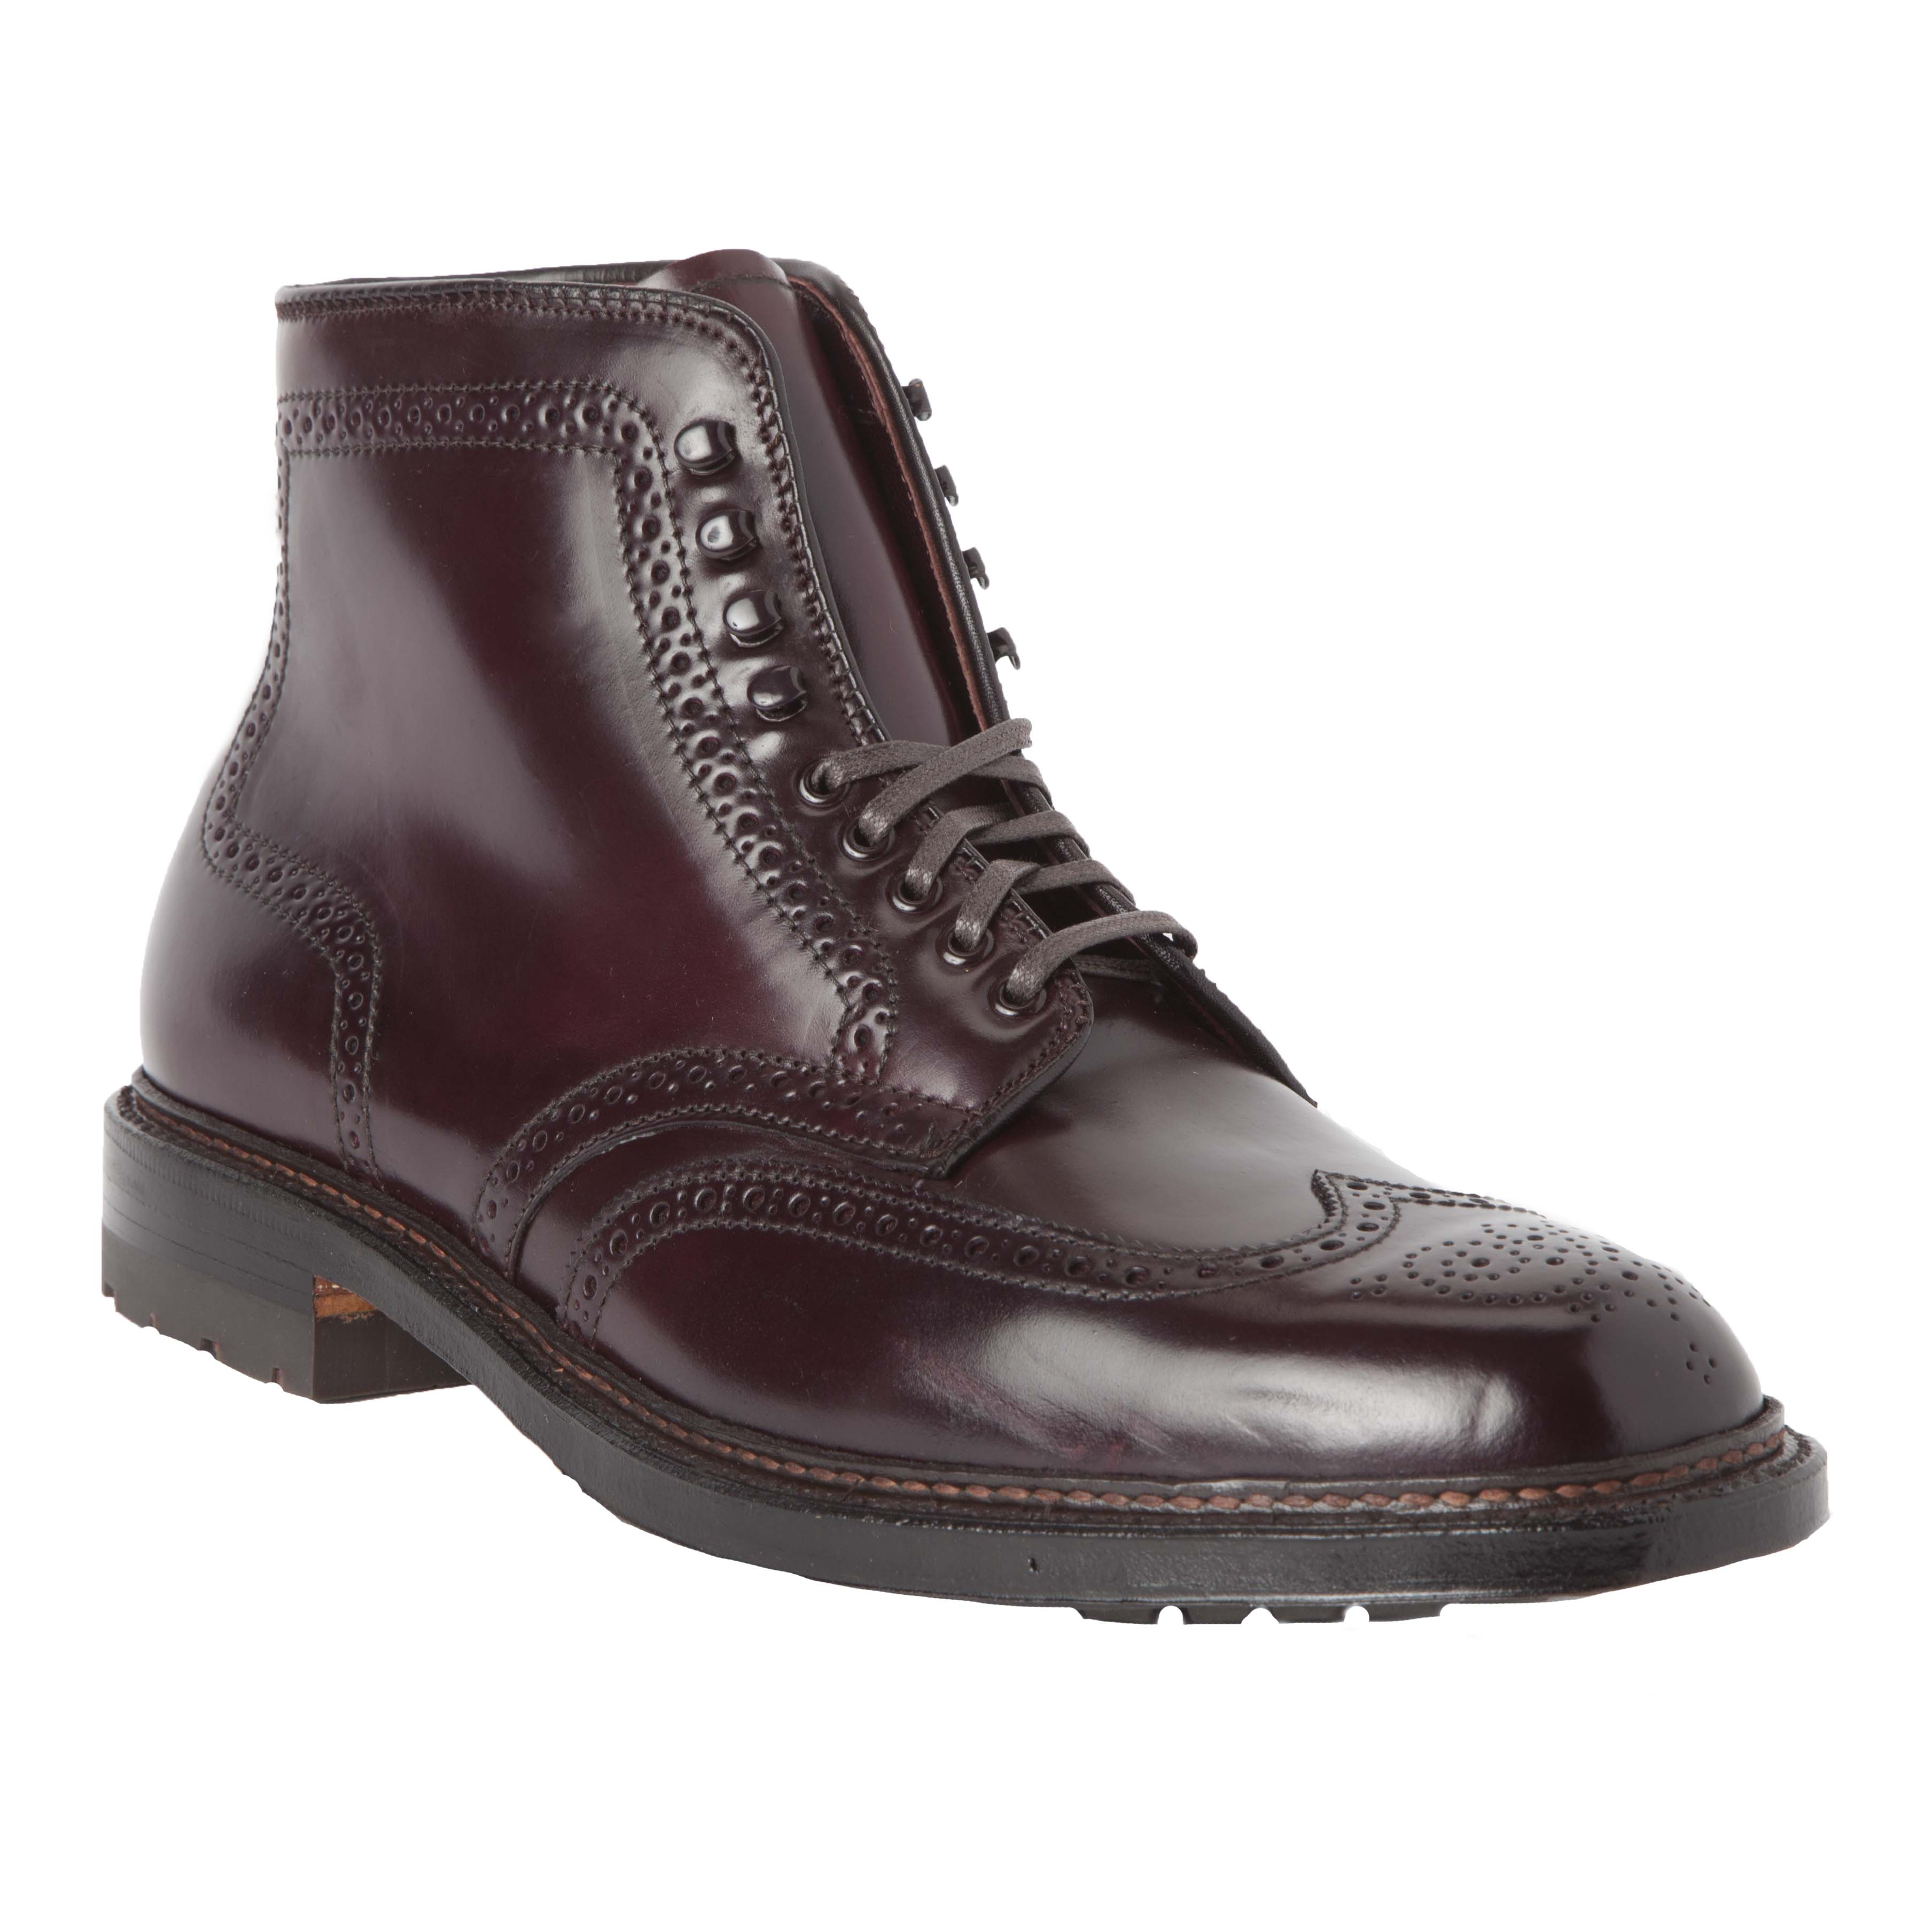 Wing Tip Bootcolor 8 Shell Cordovan4461hc Alden Shoes